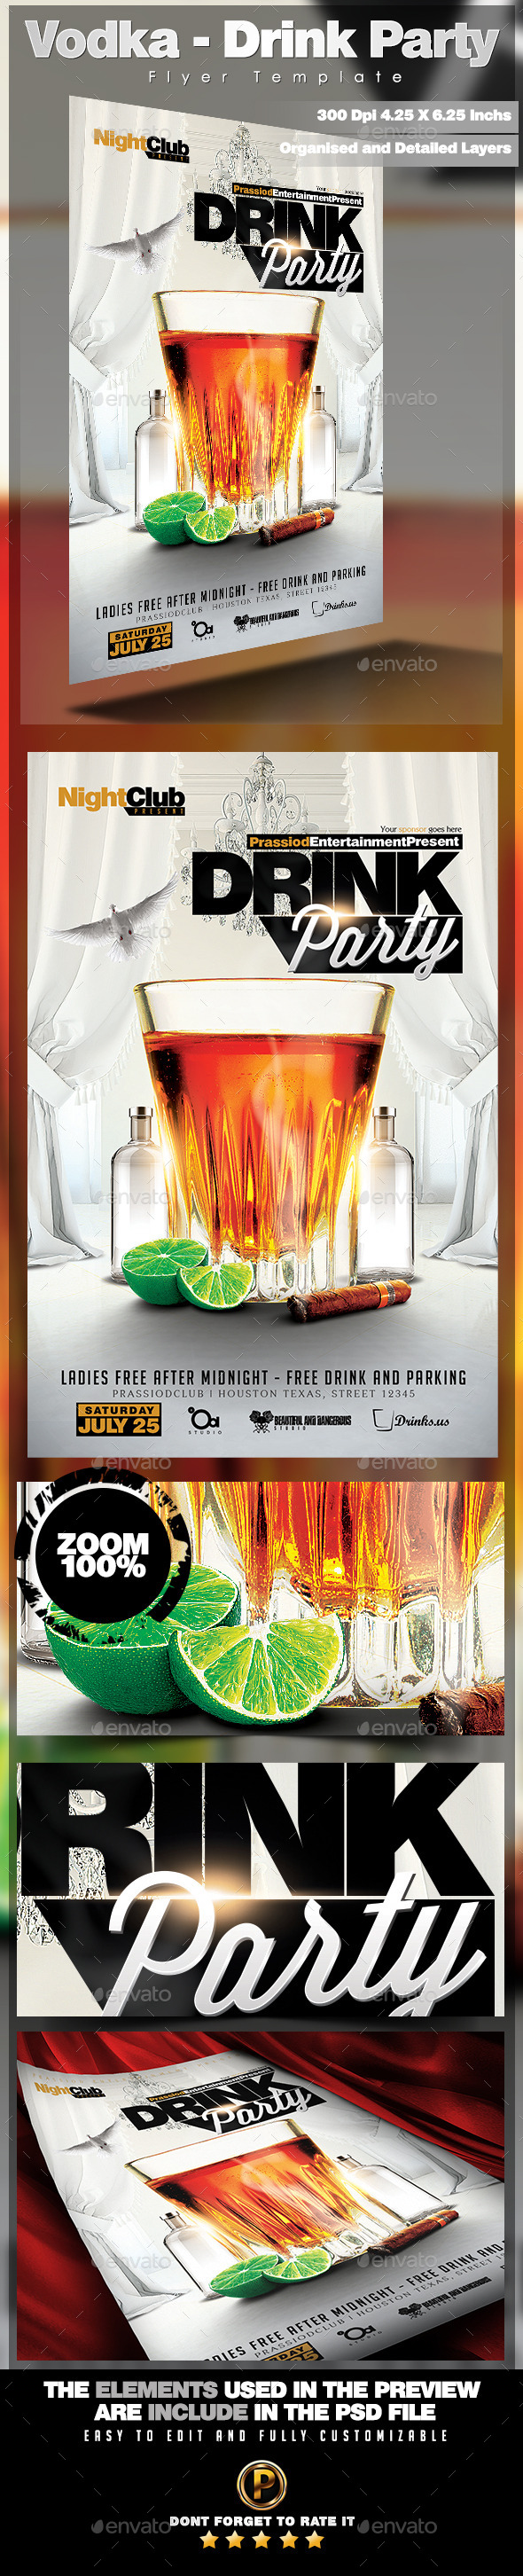 Vodka - Drink Party Flyer Template - Clubs & Parties Events